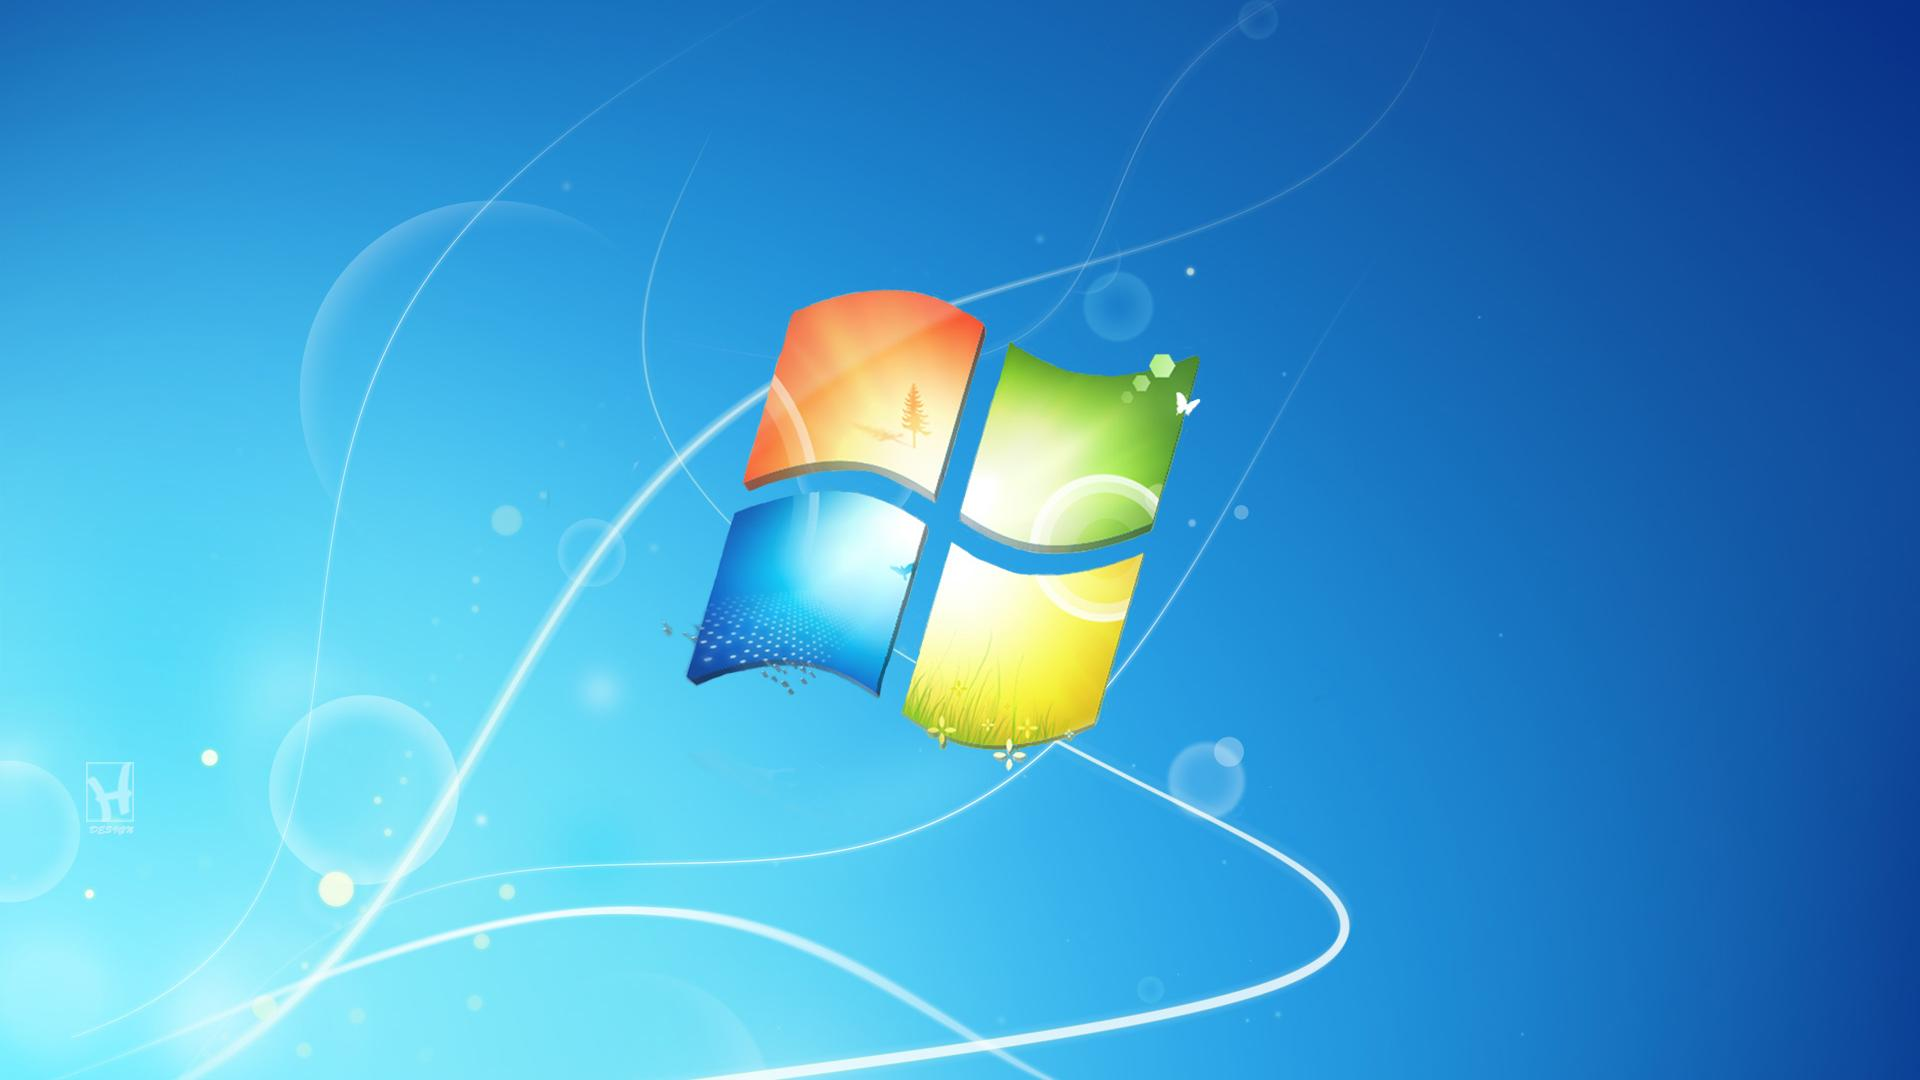 1920x1080 windows 7 wallpaper: Windows 8.1 HD Wallpapers 1920X1080